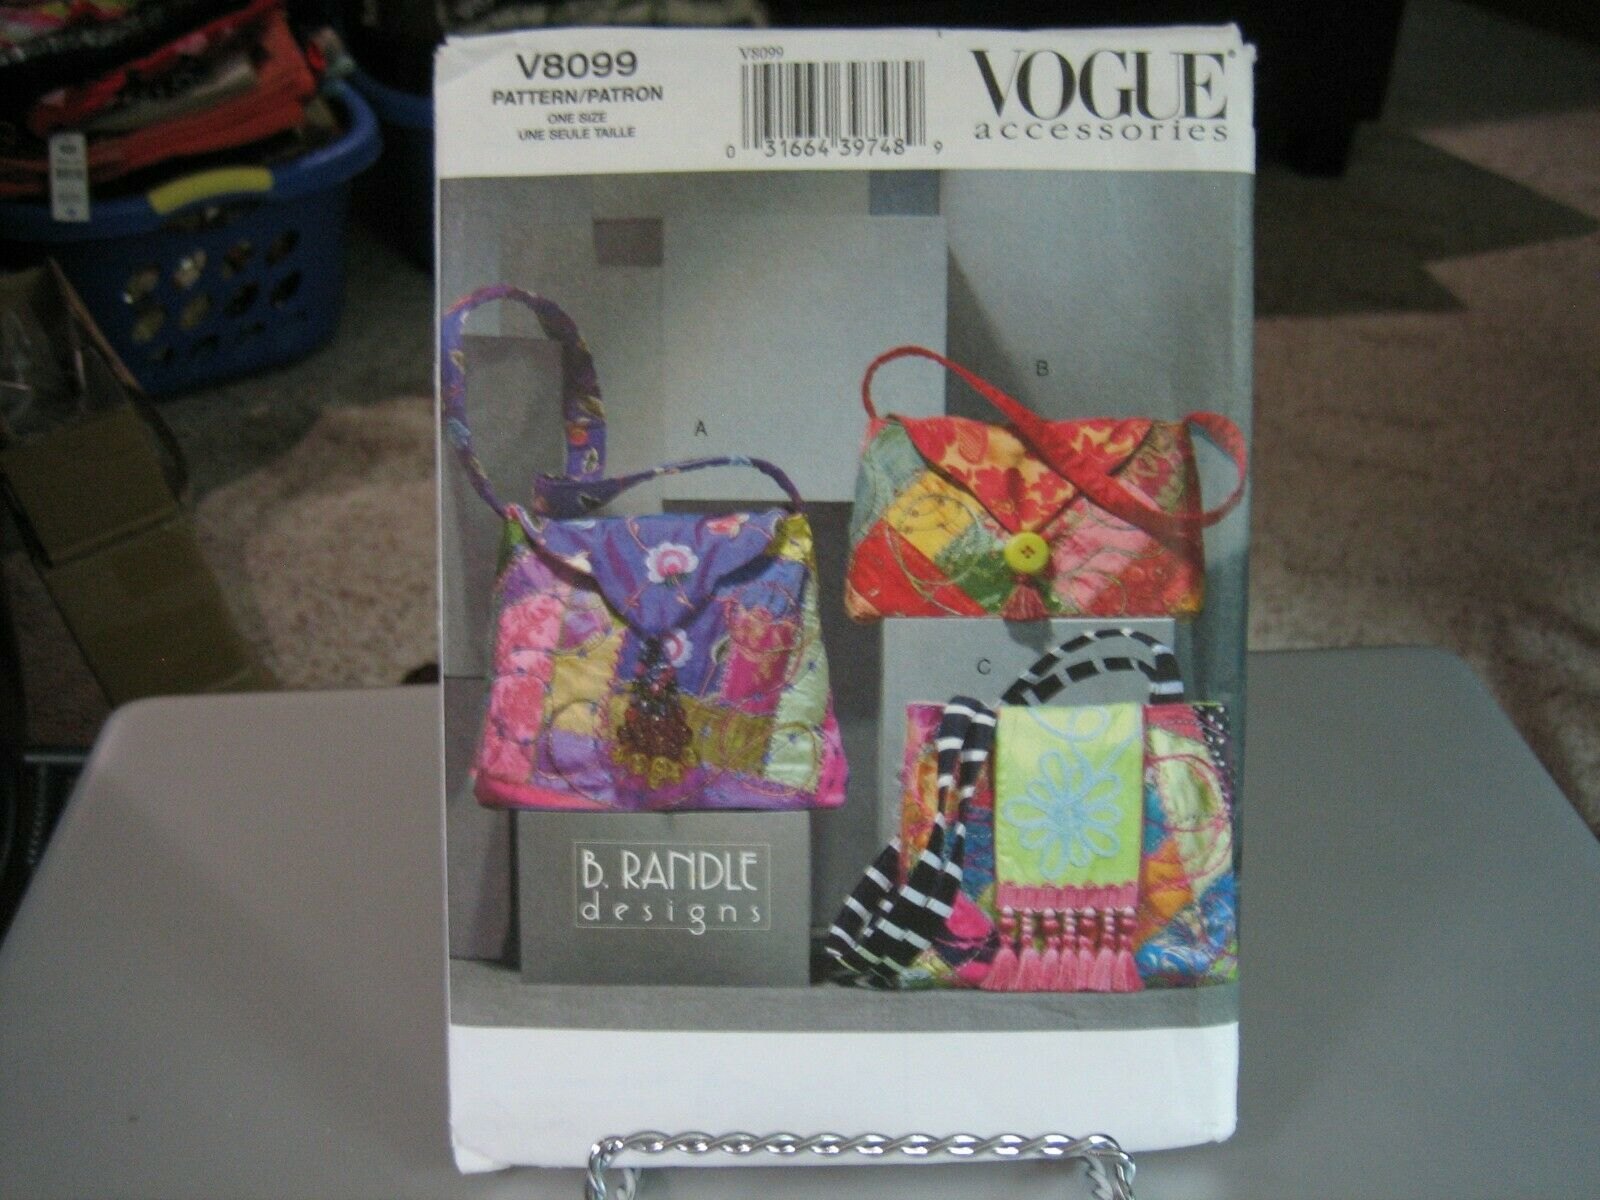 Primary image for Vogue B Randle V8099 Quilted Fabric Handbags Pattern - 13 X 10, 12 X 10 & 12 X 7